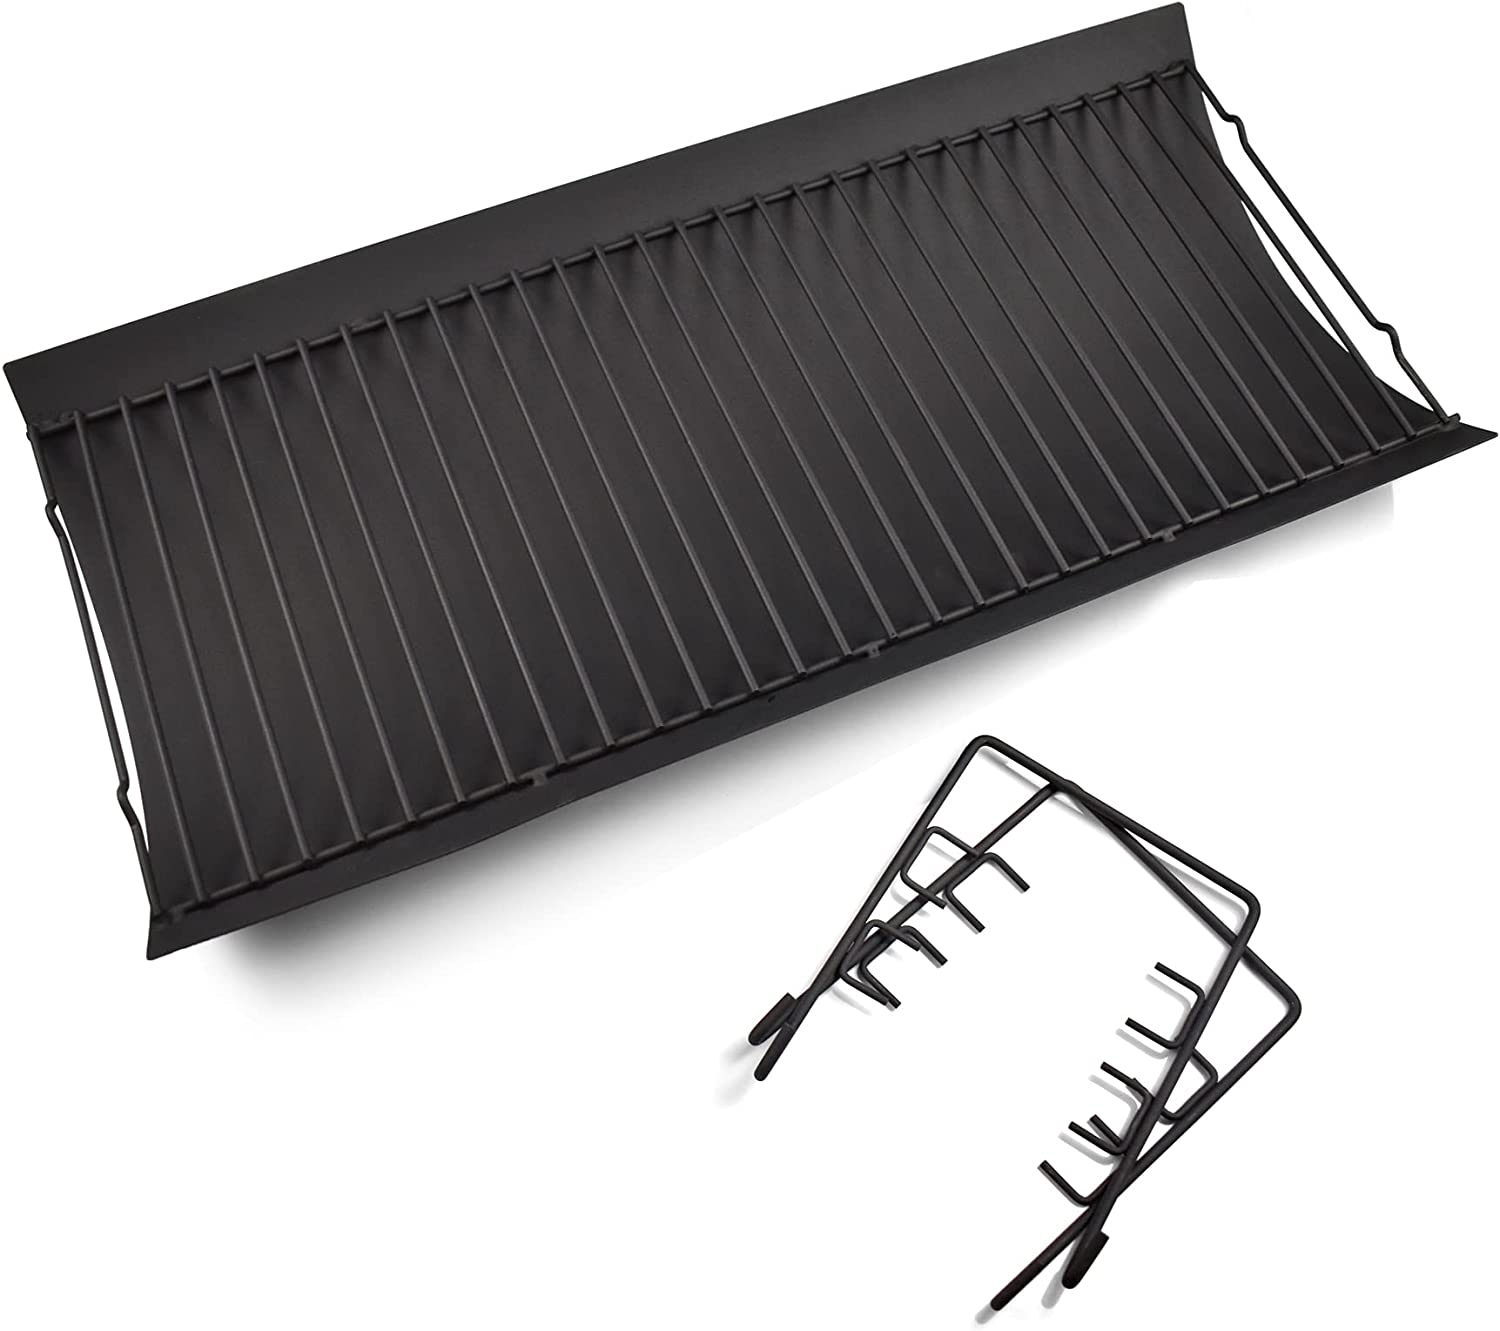 Dtong 27 Inch Grill Ash Pan Grate Hanger Max 46% Max 71% OFF OFF 2pcs with Fire Drip